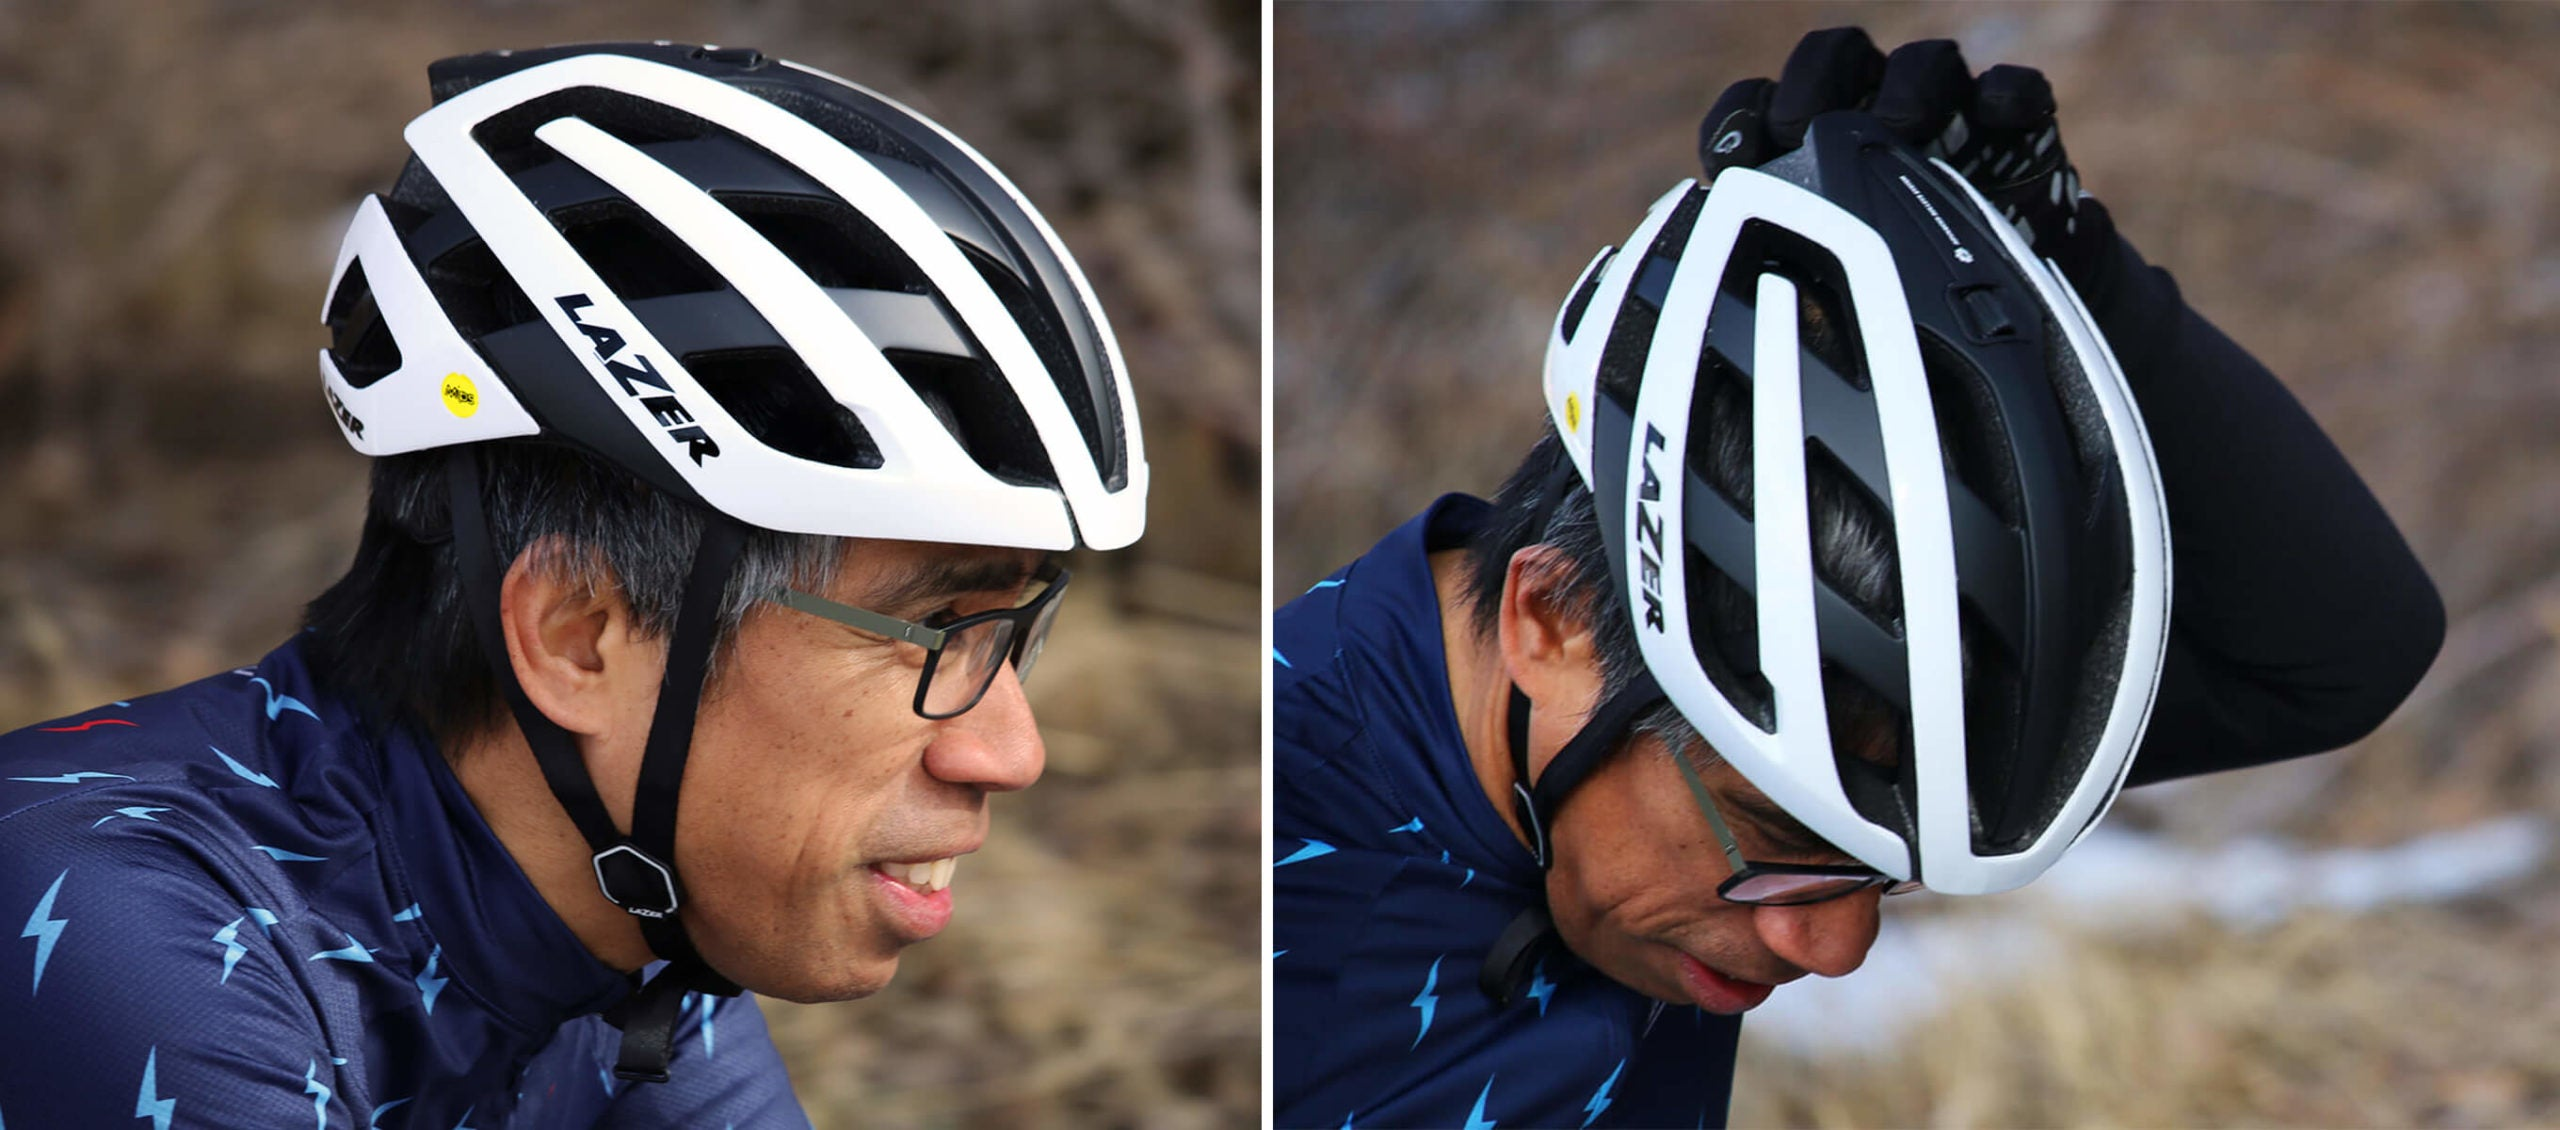 Lazer G1 MIPS Road Cycling Helmet Review - Contender Bicycles